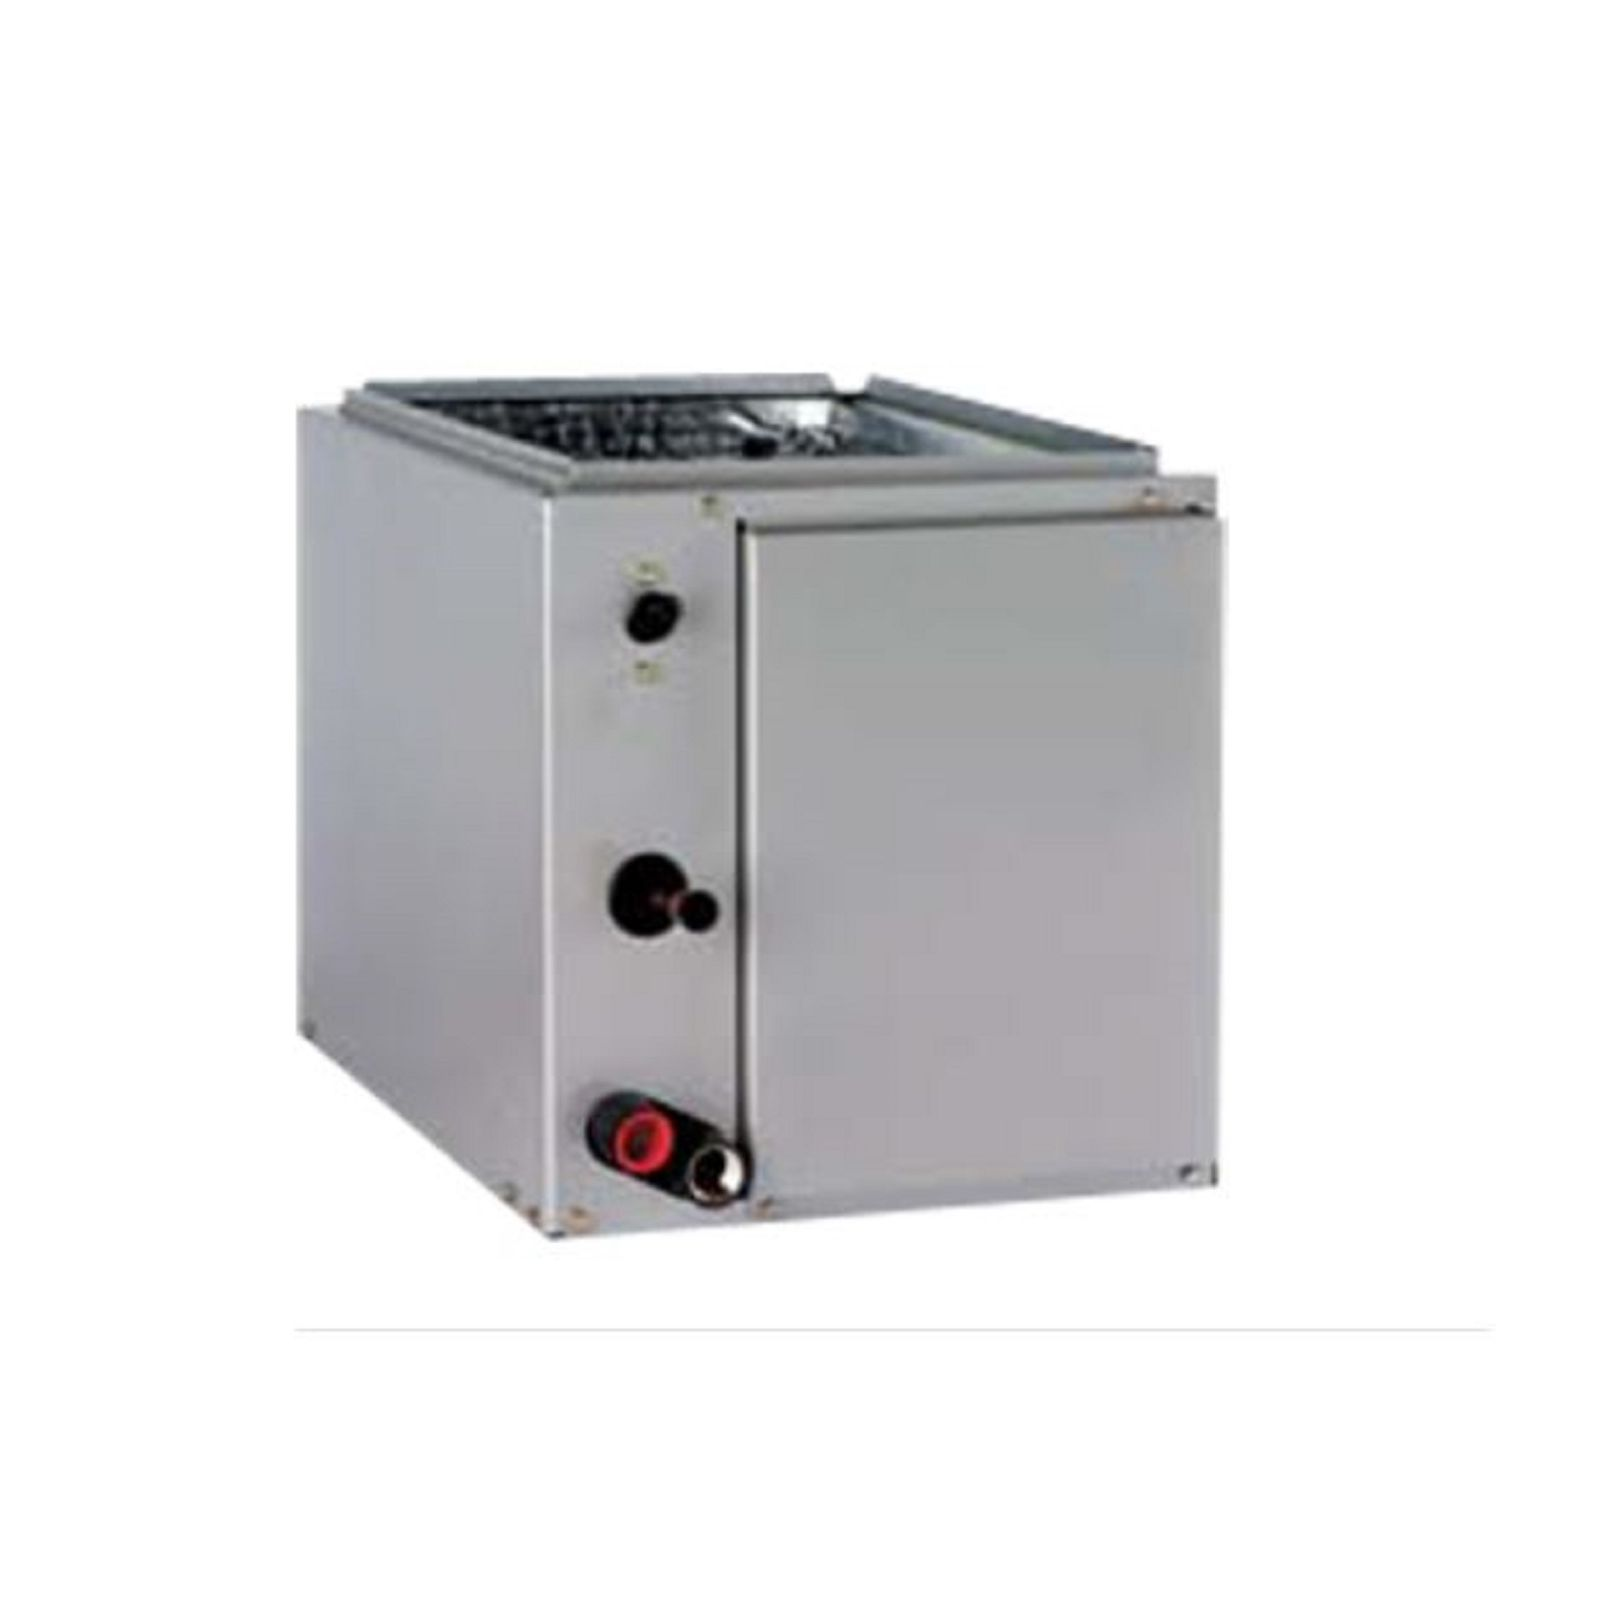 "Tempstar END4X30L17A - 2 1/2 Ton, R410A, Cased Up/Down Flow, N Type Evaporator Coil, With TXV, 17.5"" Wide"